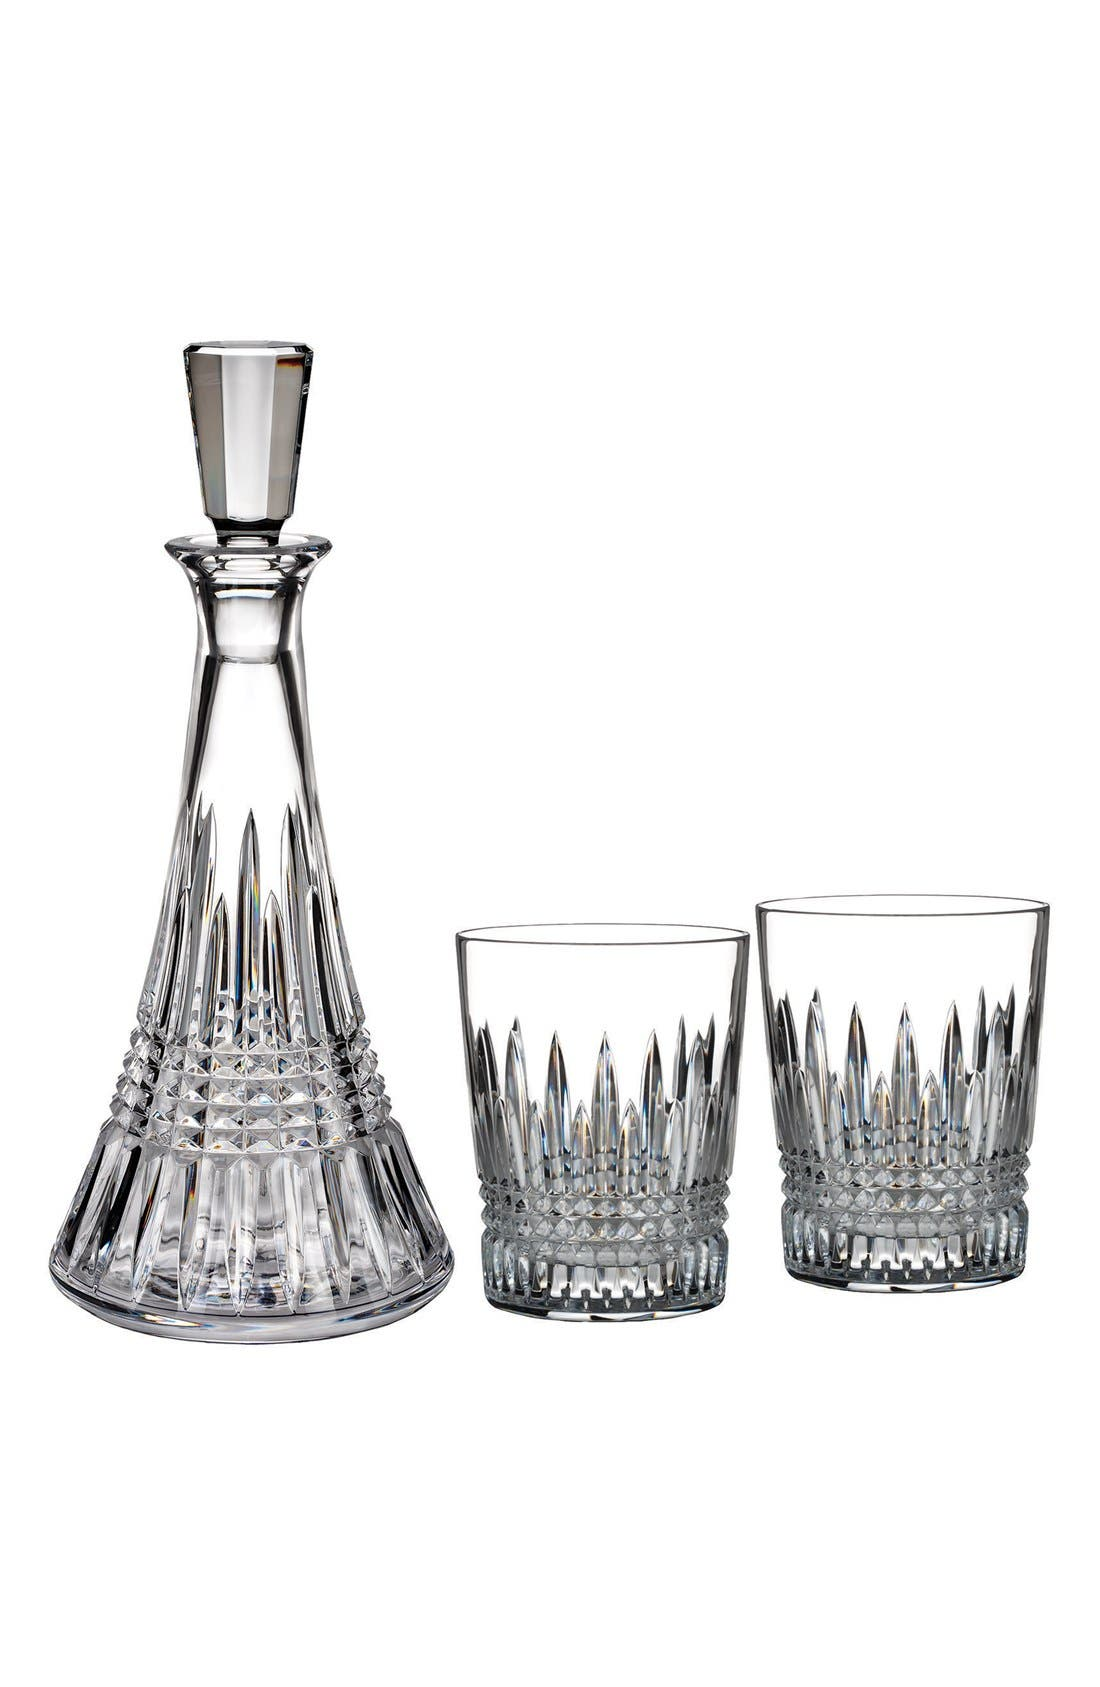 Main Image - Waterford 'Lismore Diamond' Lead Crystal Decanter & Double Old-Fashioned Glasses (Set of 3)